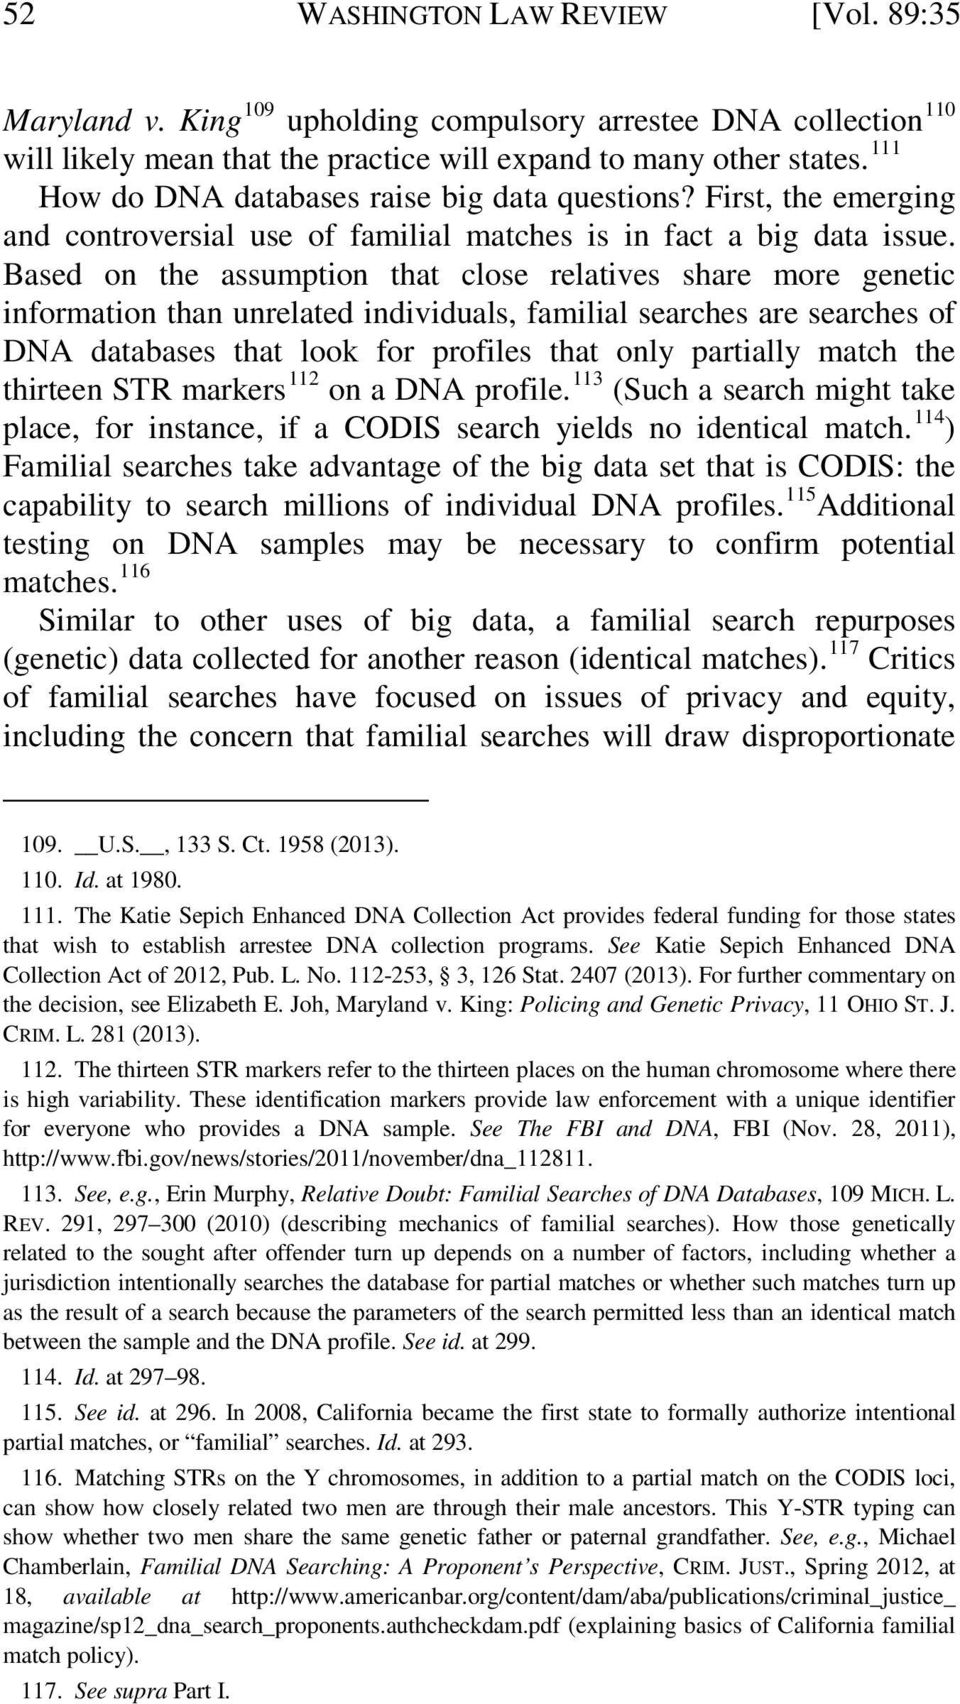 Based on the assumption that close relatives share more genetic information than unrelated individuals, familial searches are searches of DNA databases that look for profiles that only partially